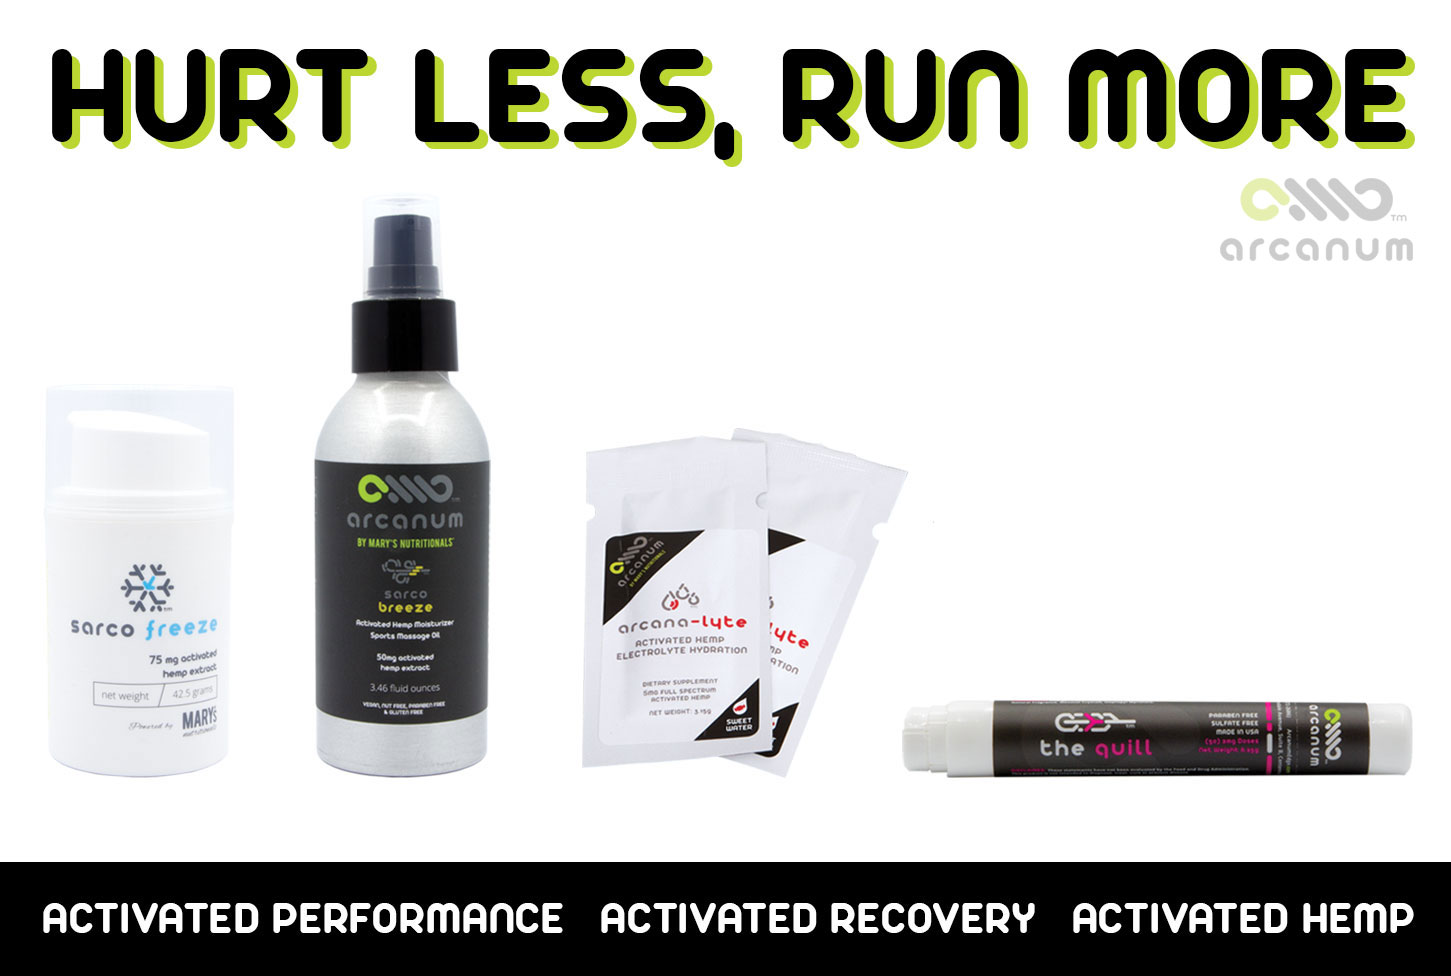 Hurt Less, Run More with Arcanum CBD Performance and Recovery Products